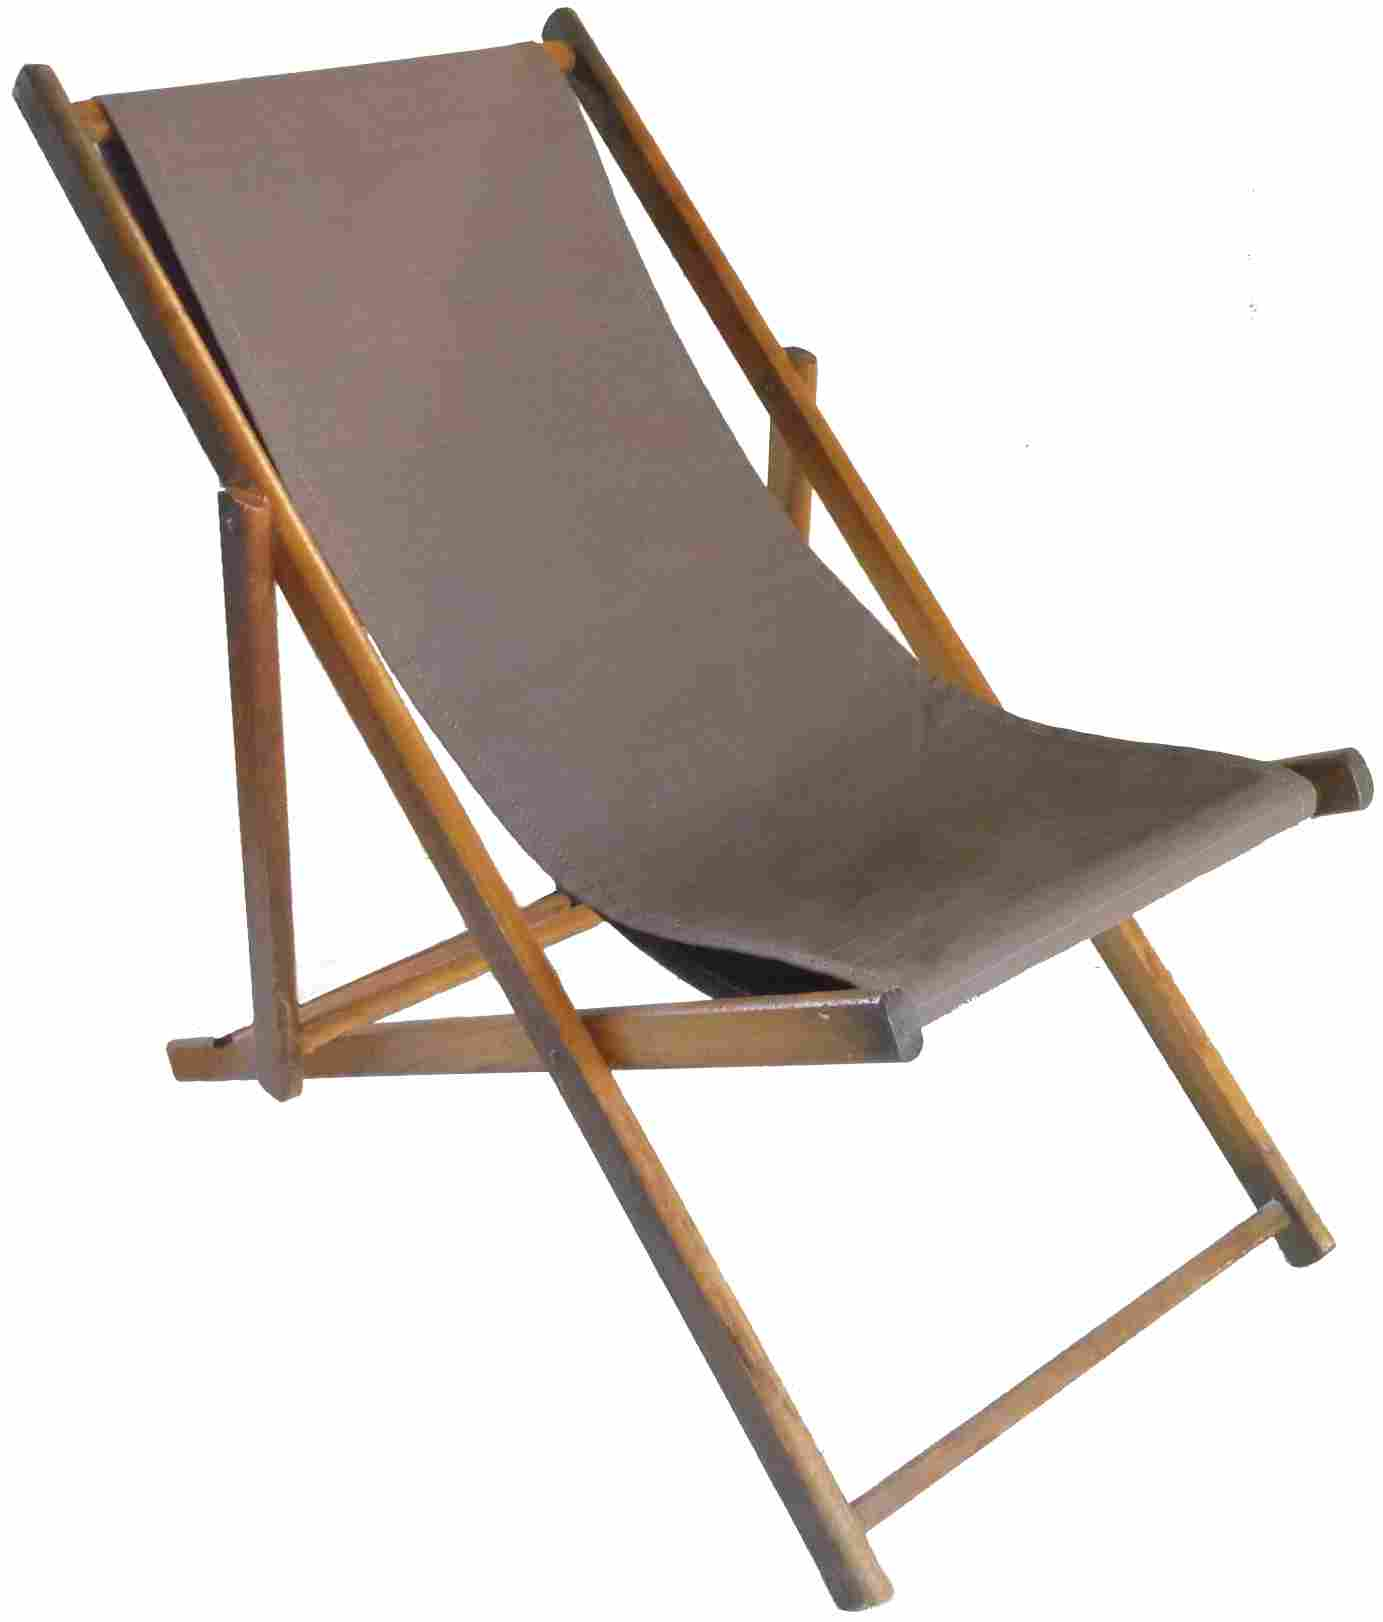 Attractive Directors Chair Replacement Canvas for Best Director Chair Ideas: Directors Chair Replacement Canvas | Deck Chair Replacement Fabric | Director Chairs Covers